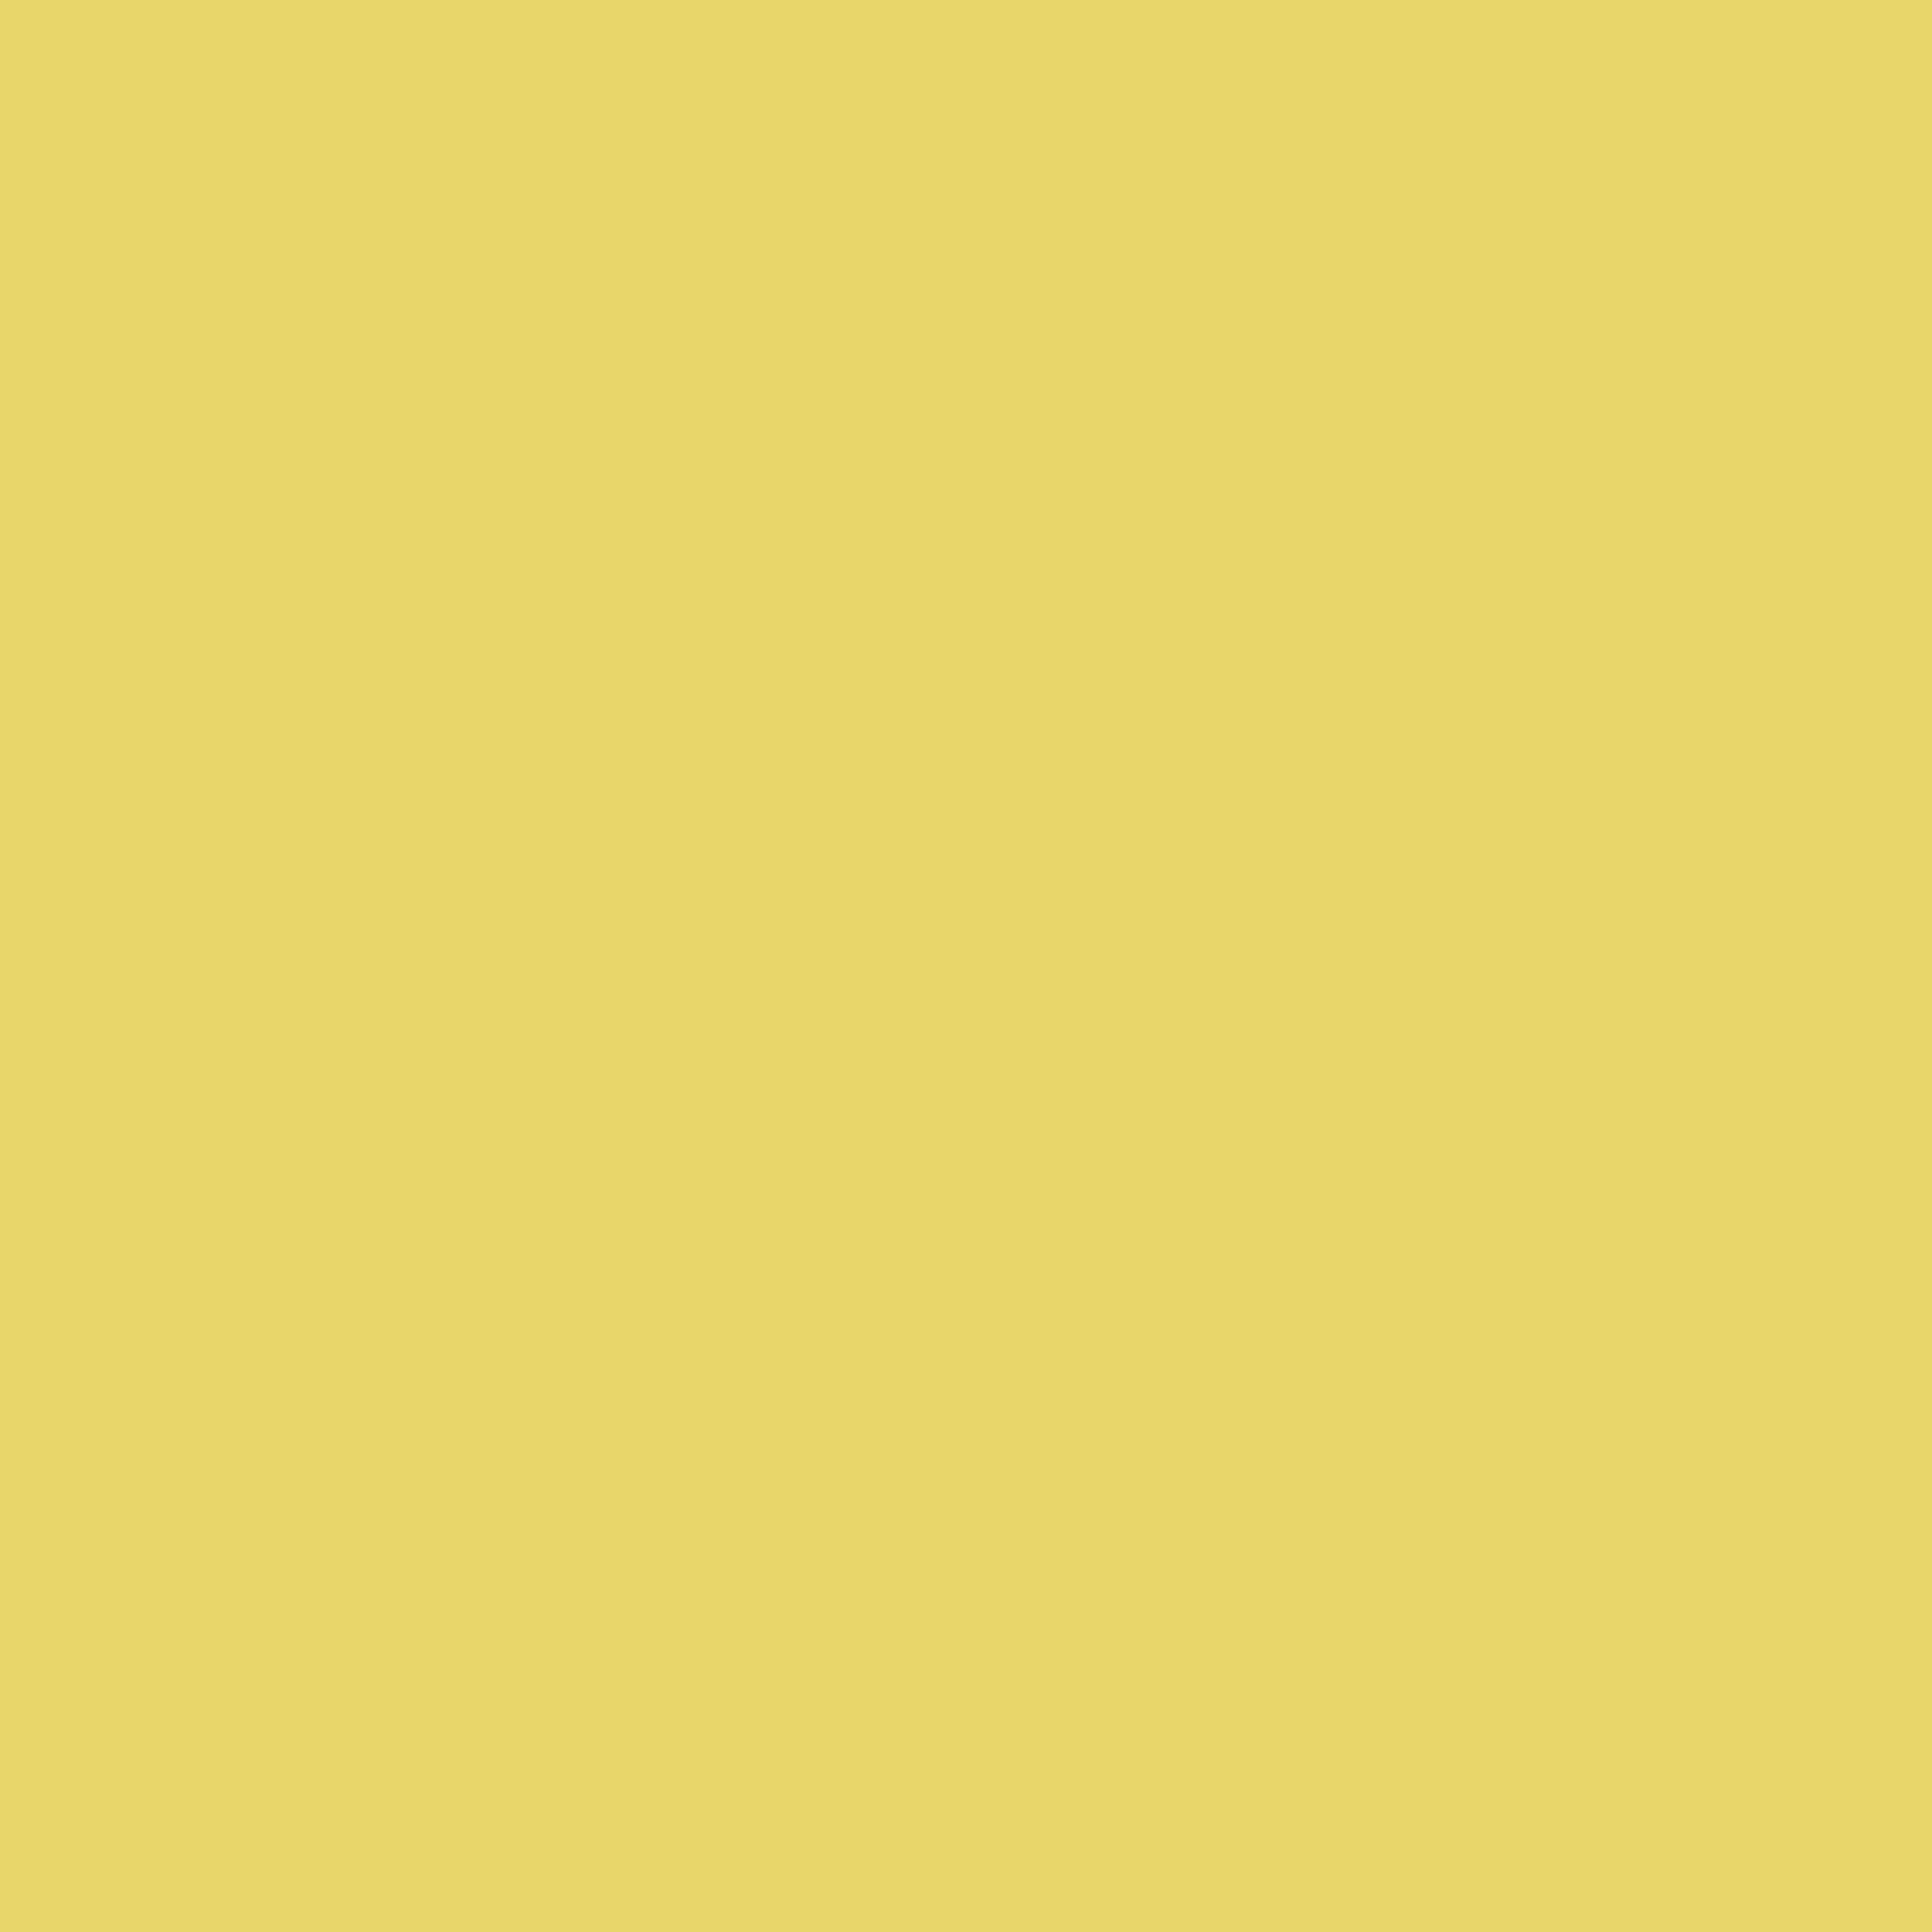 2048x2048 Arylide Yellow Solid Color Background